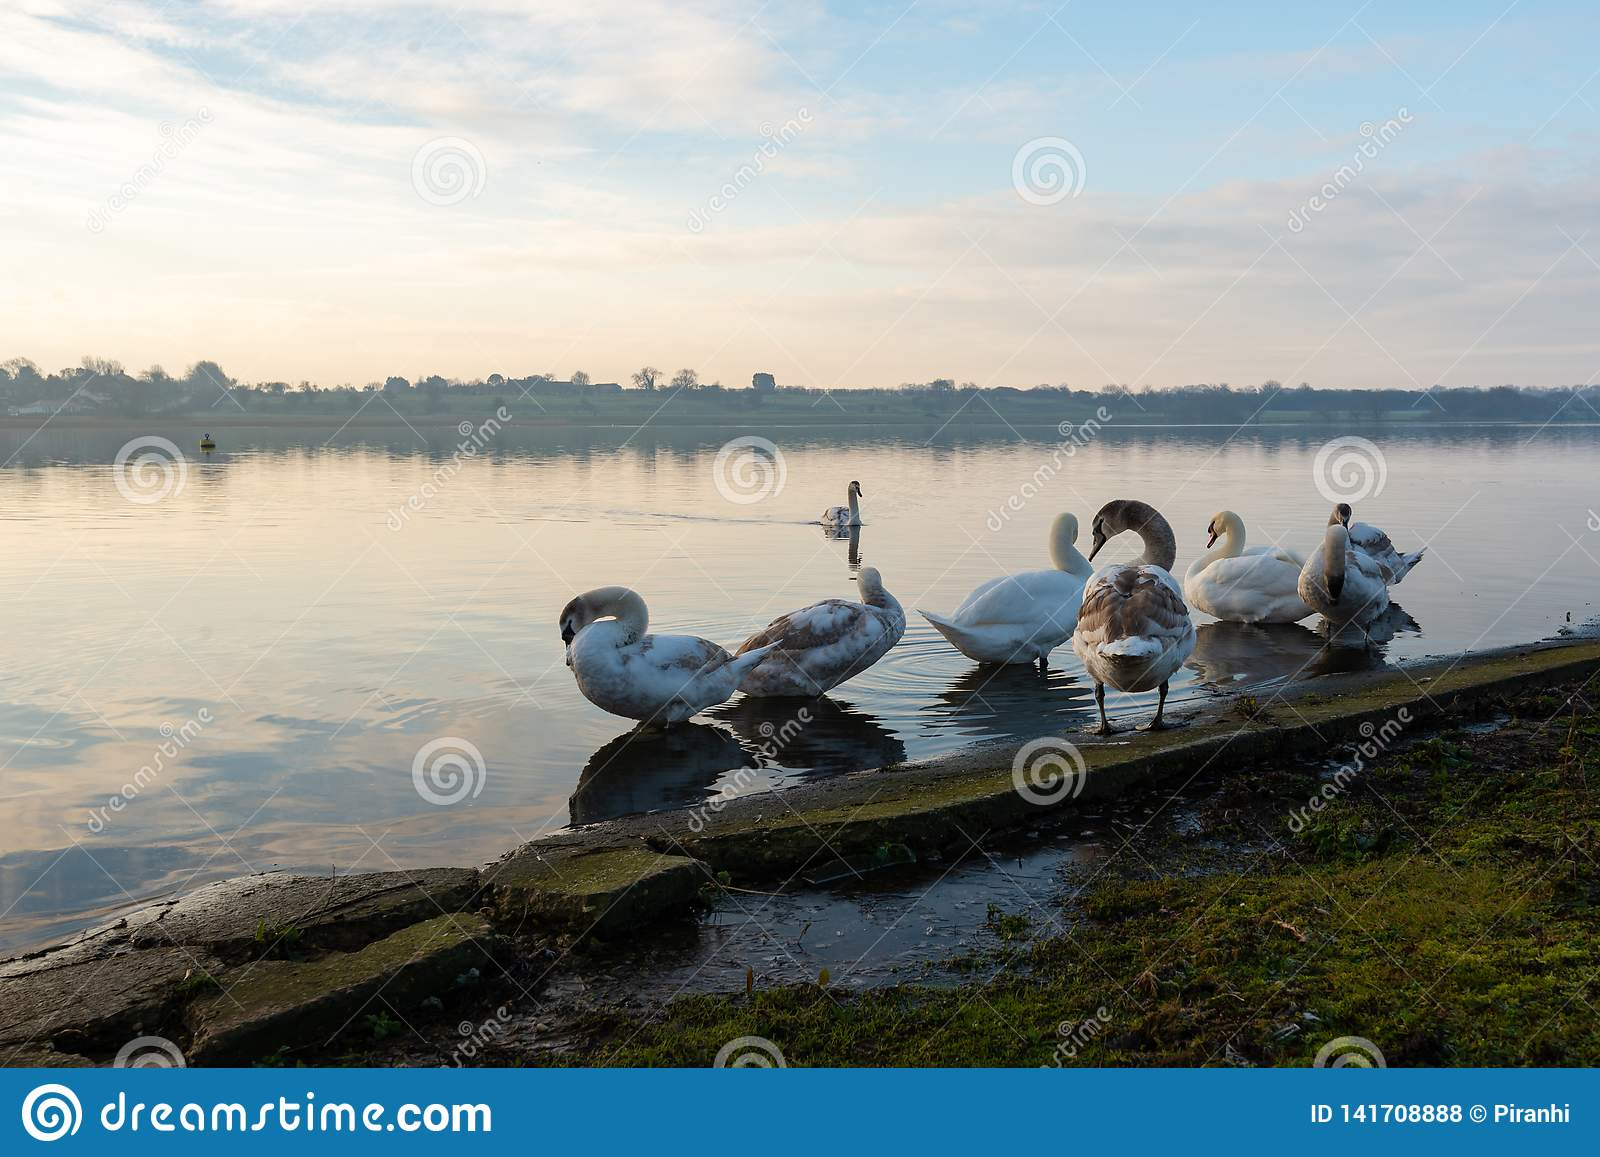 Swans clean themselves on a frozen lake in the middle of Winter in Hornsea Mere